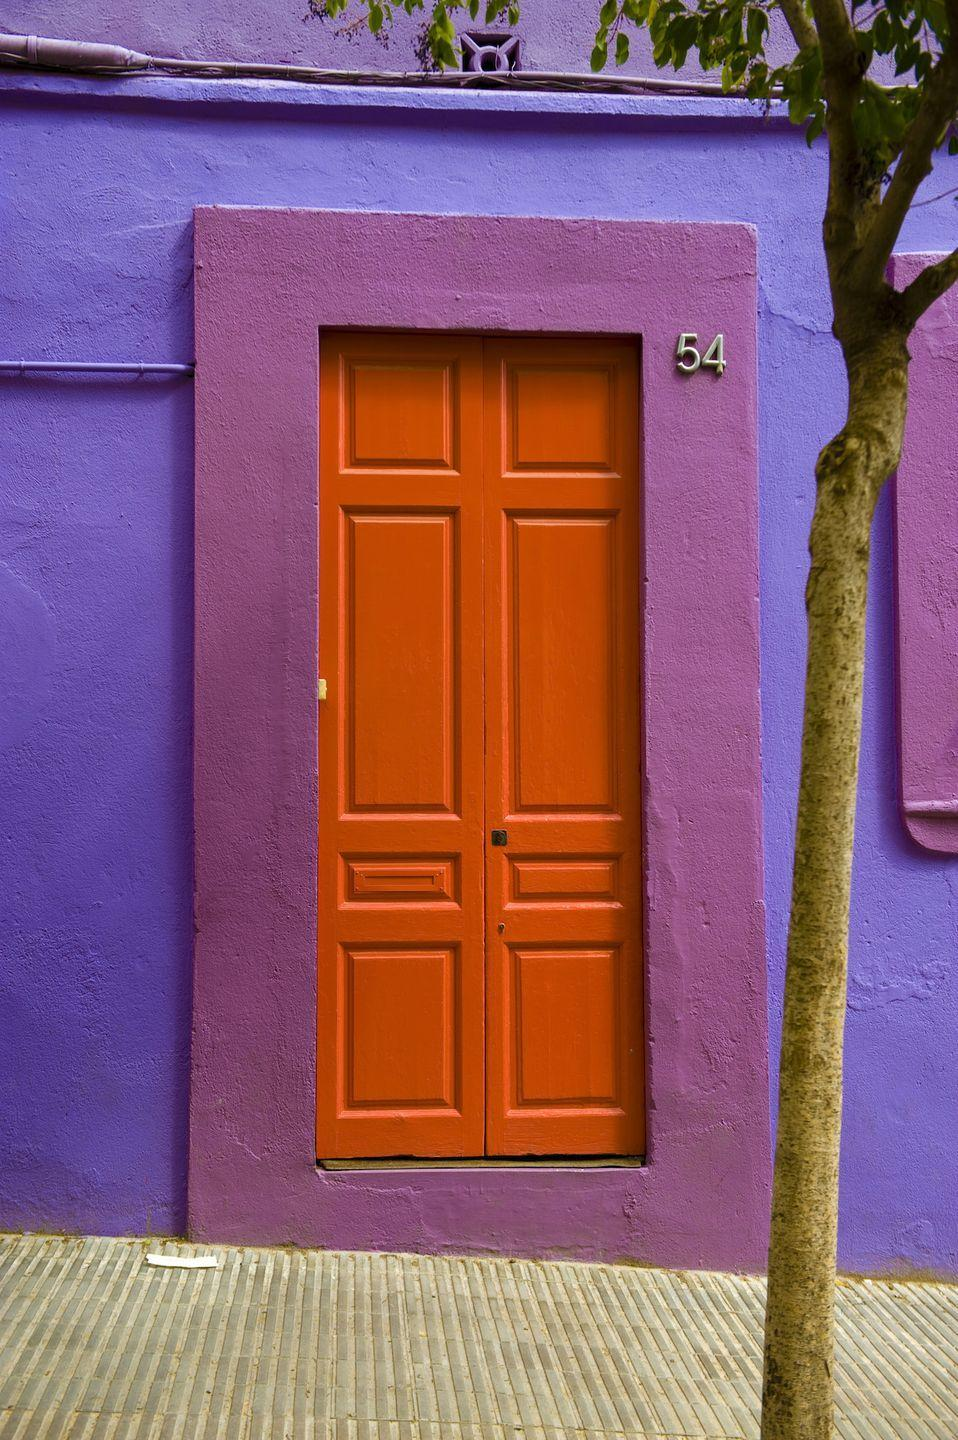 <p>A bright orange door framed by pretty shades of purple.</p>